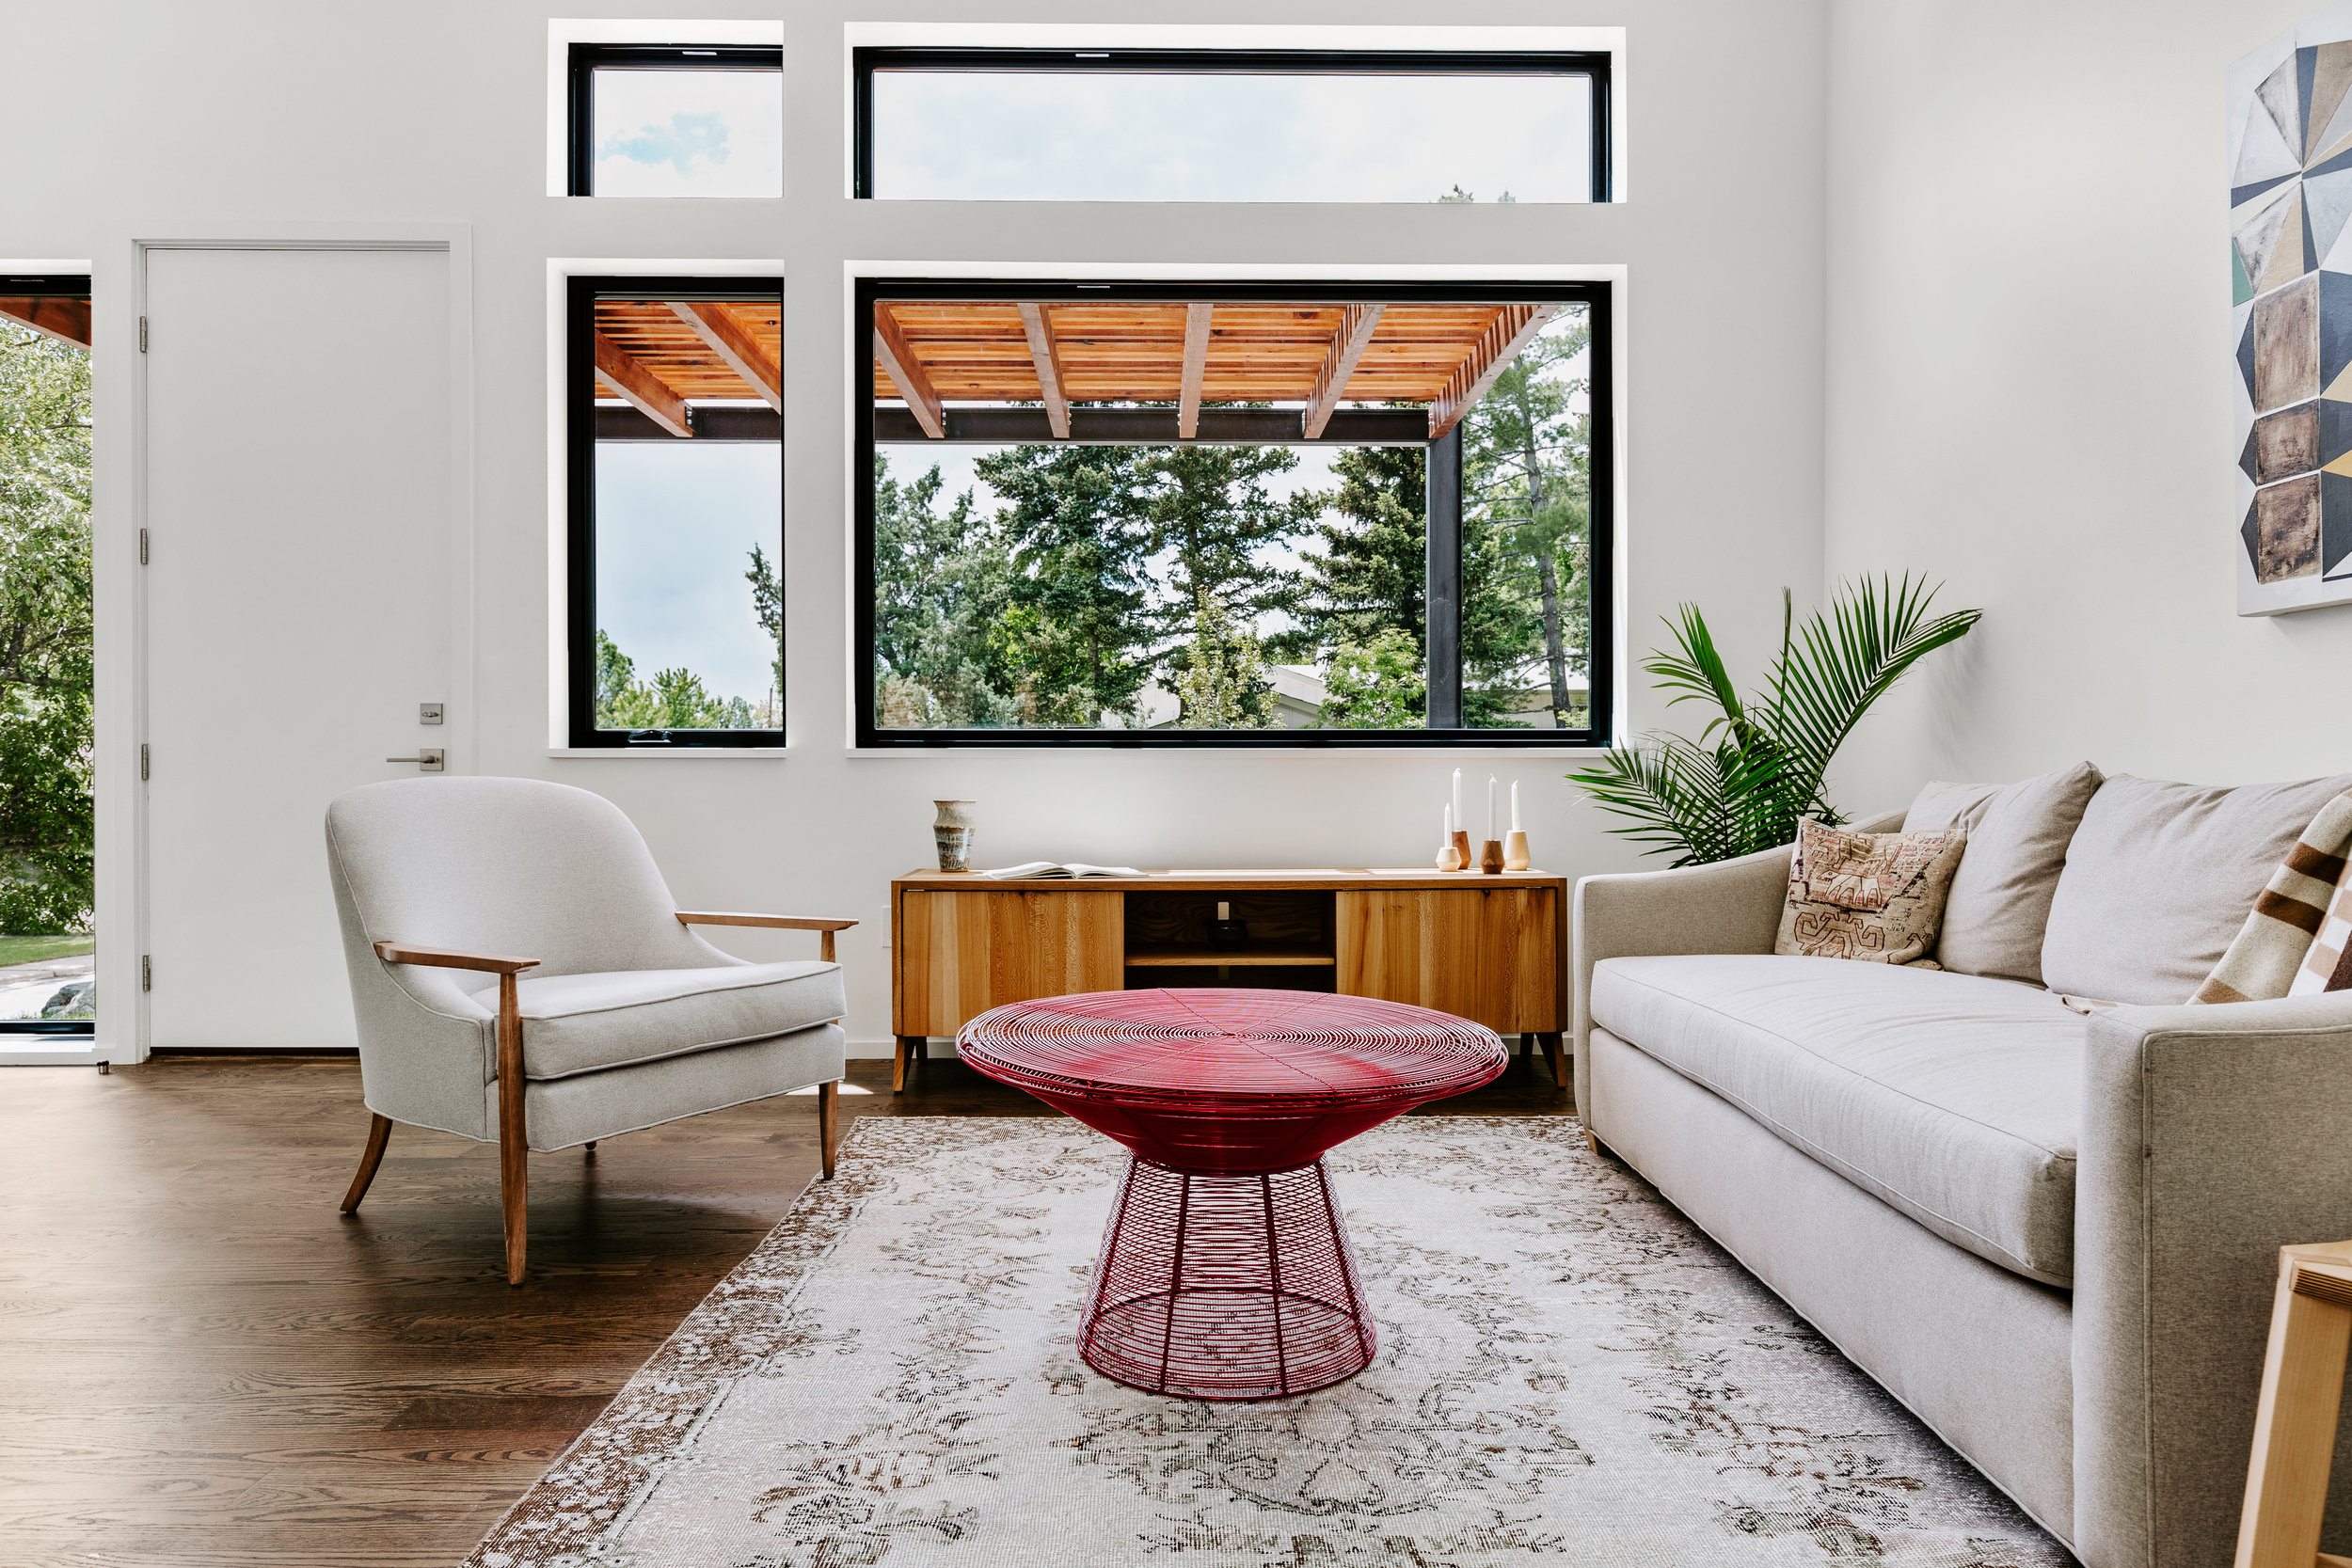 1485 Linden Ave. - Contemporary Boulder living built by Watts Architecture. Listed by Patrick Brown, Compass.Sold in 22 hours for $1.39 Million